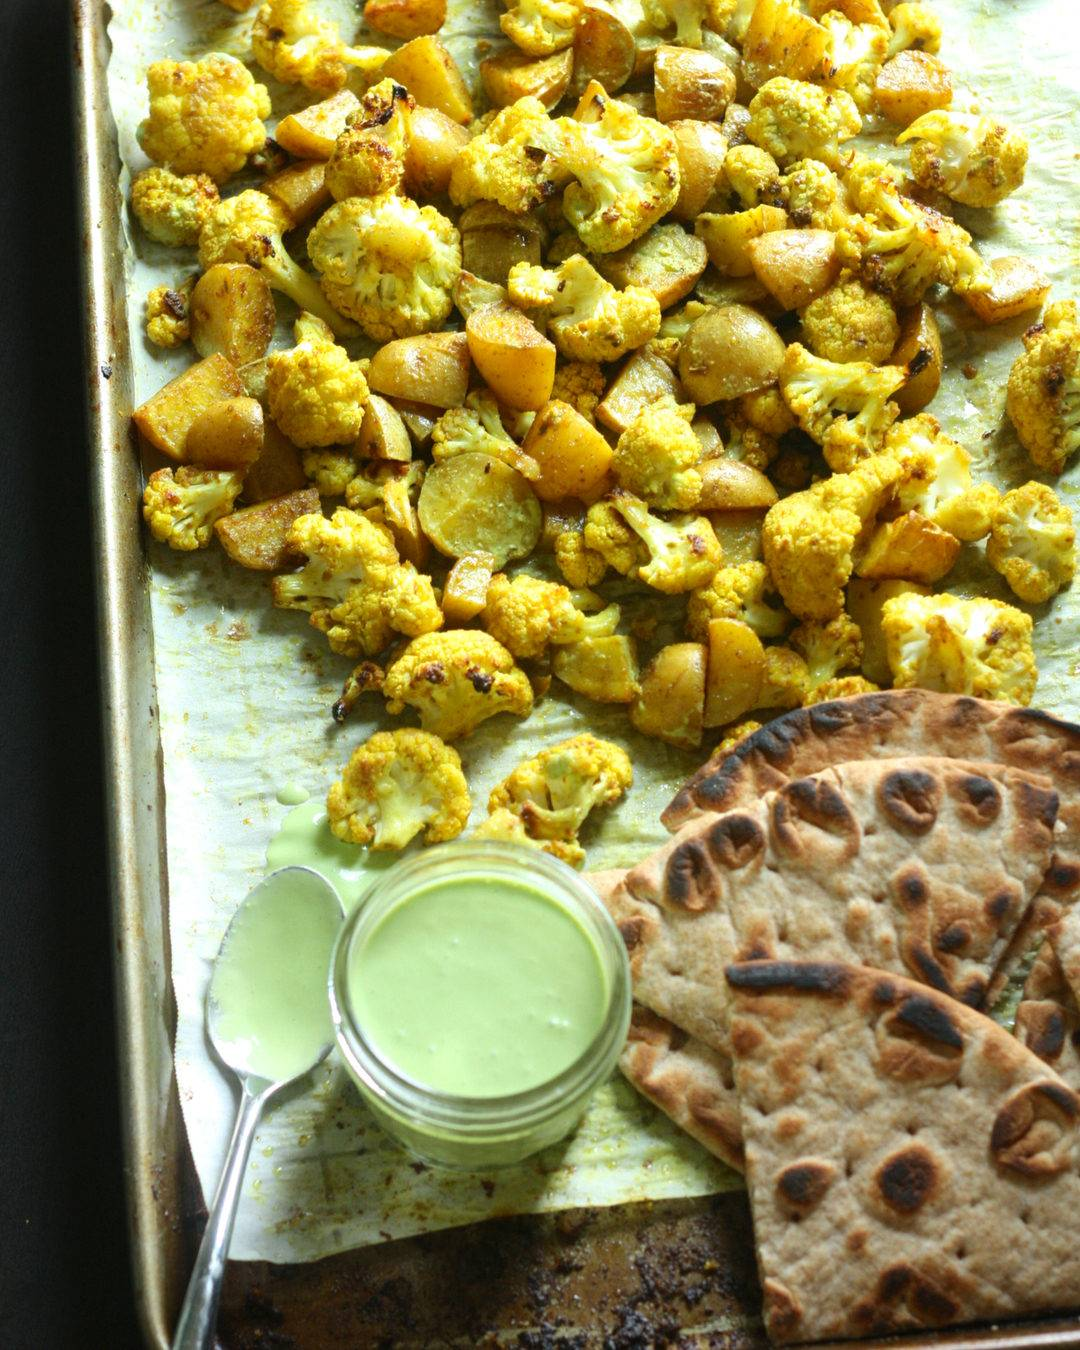 Sheetpan with roasted cauliflower and potatoes, grilled naan, and cilantro yogurt sauce